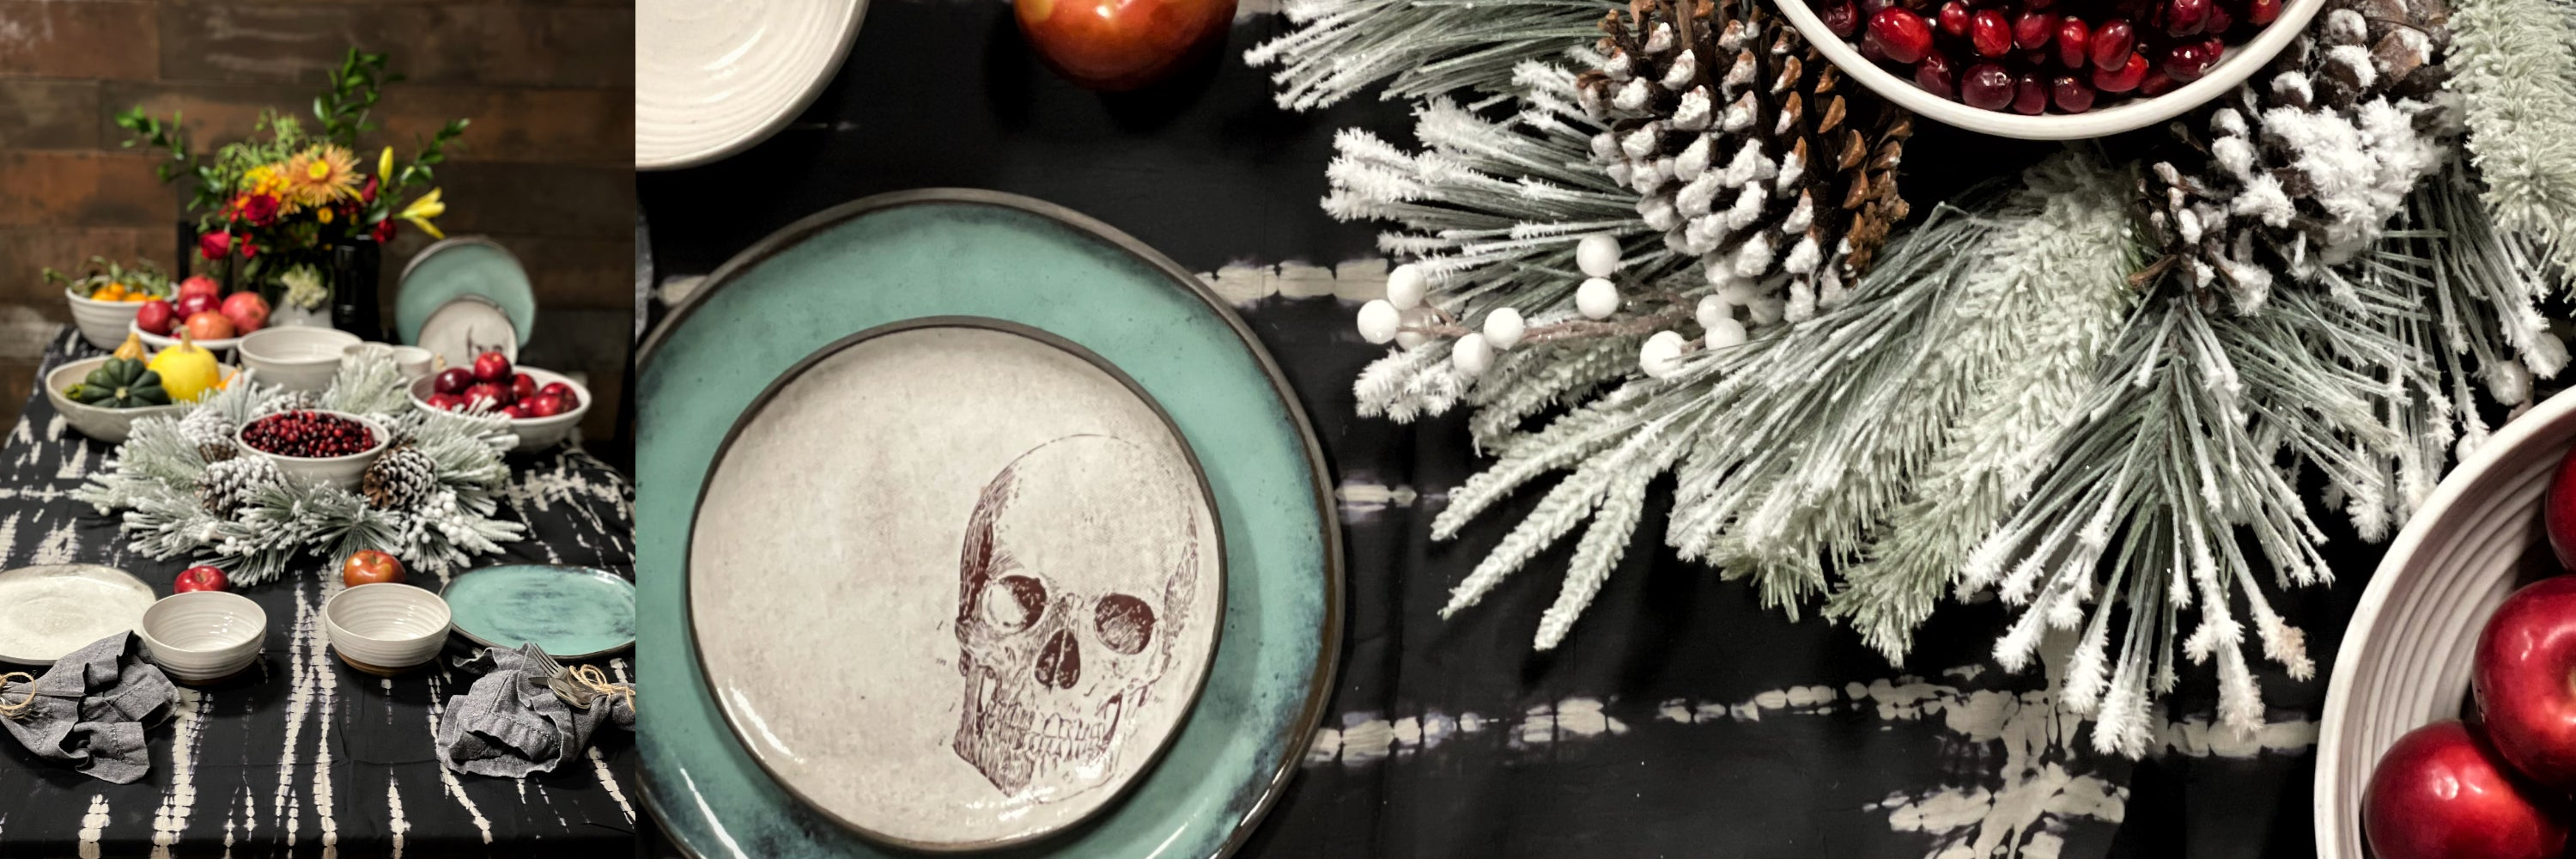 Image of the decorated table from the end and a close up of the Skull dessert plate on a larger turquoise dinner plate surrounded by bowls of fruit.